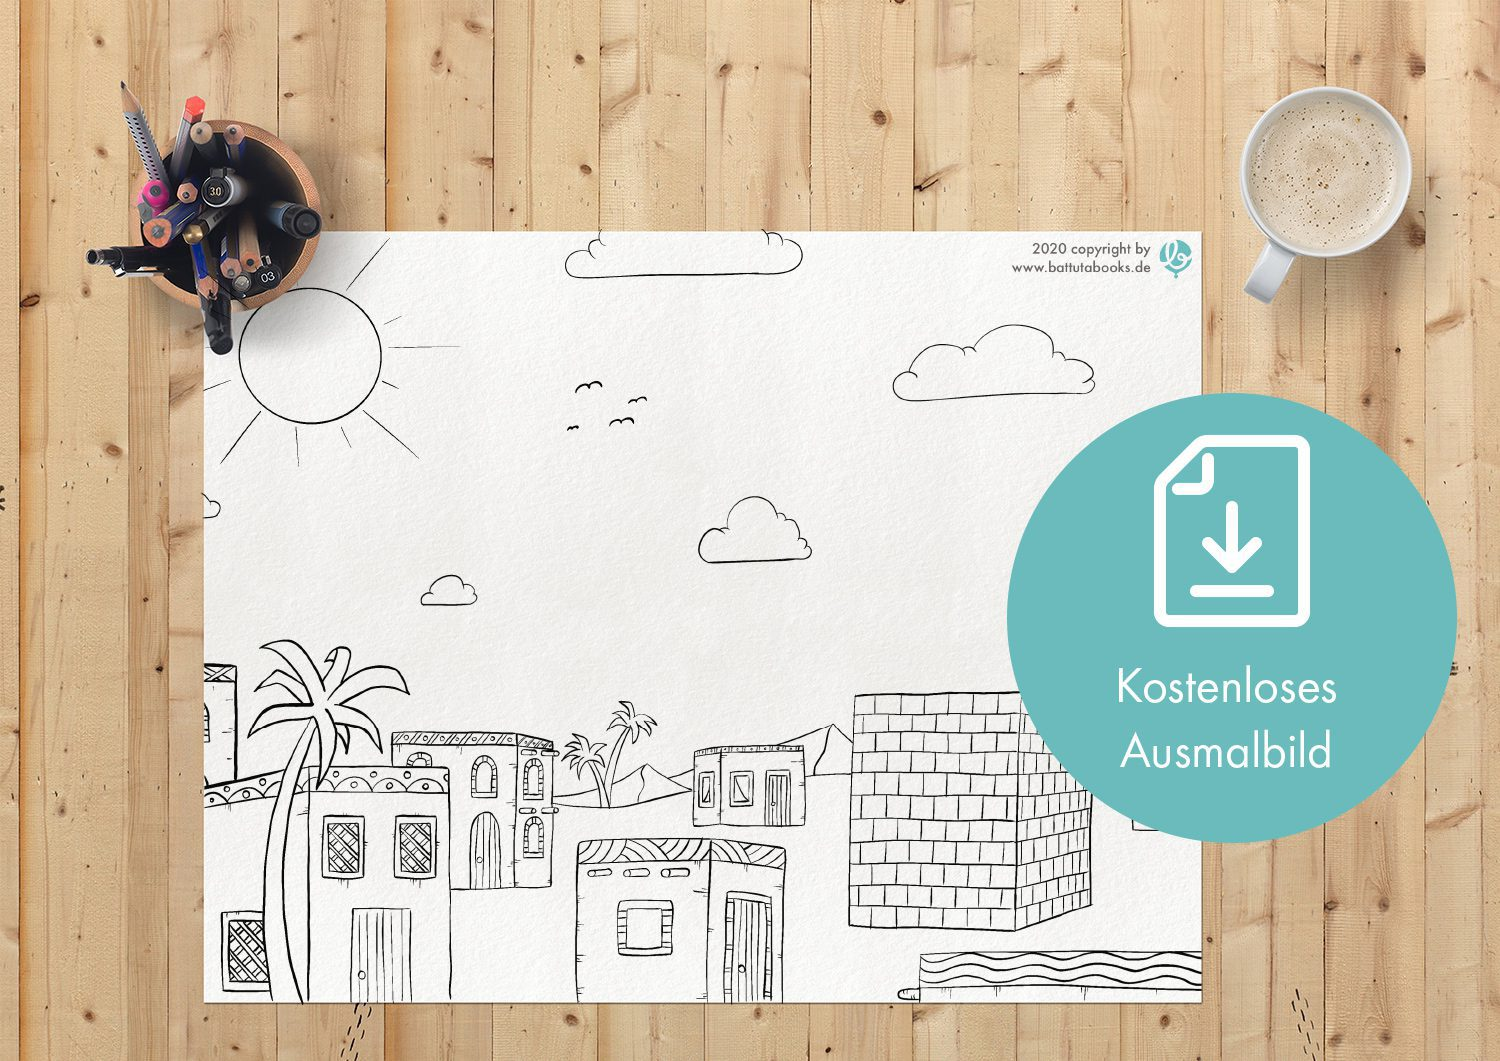 Free Islamic coloring picture from battutabooks